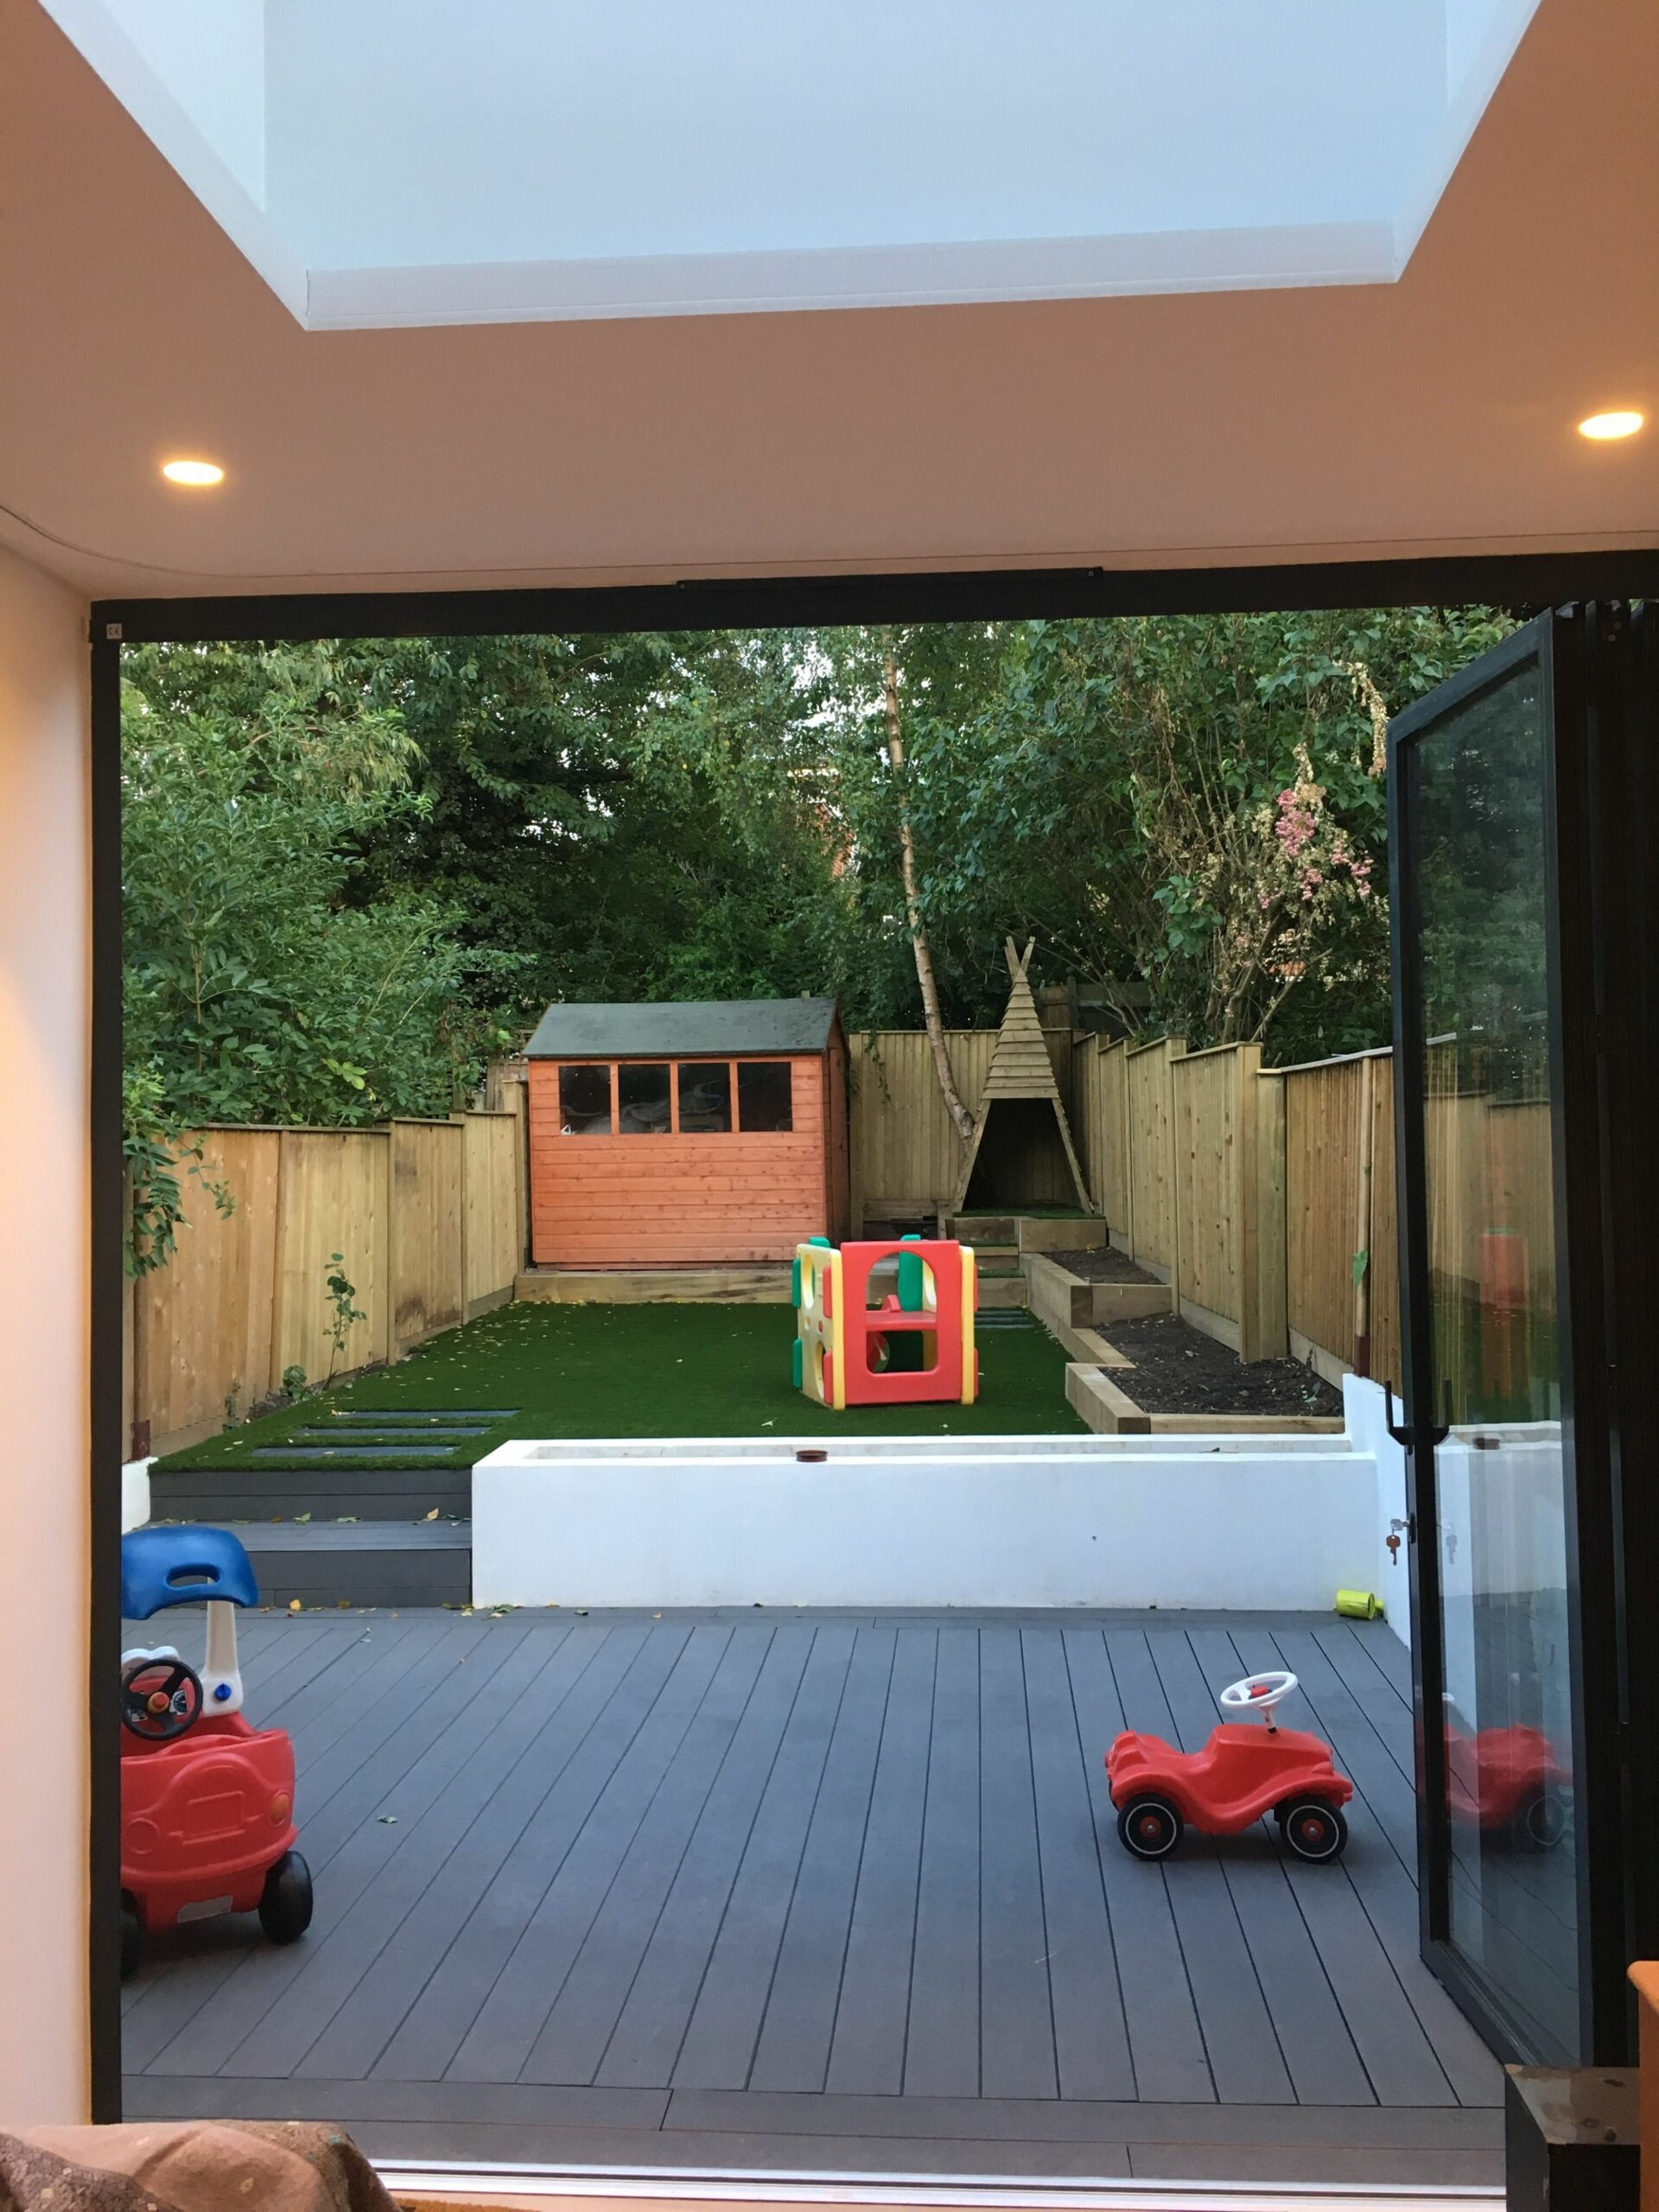 Child friendly garden, N10, London | Child friendly garden, Toddler ..